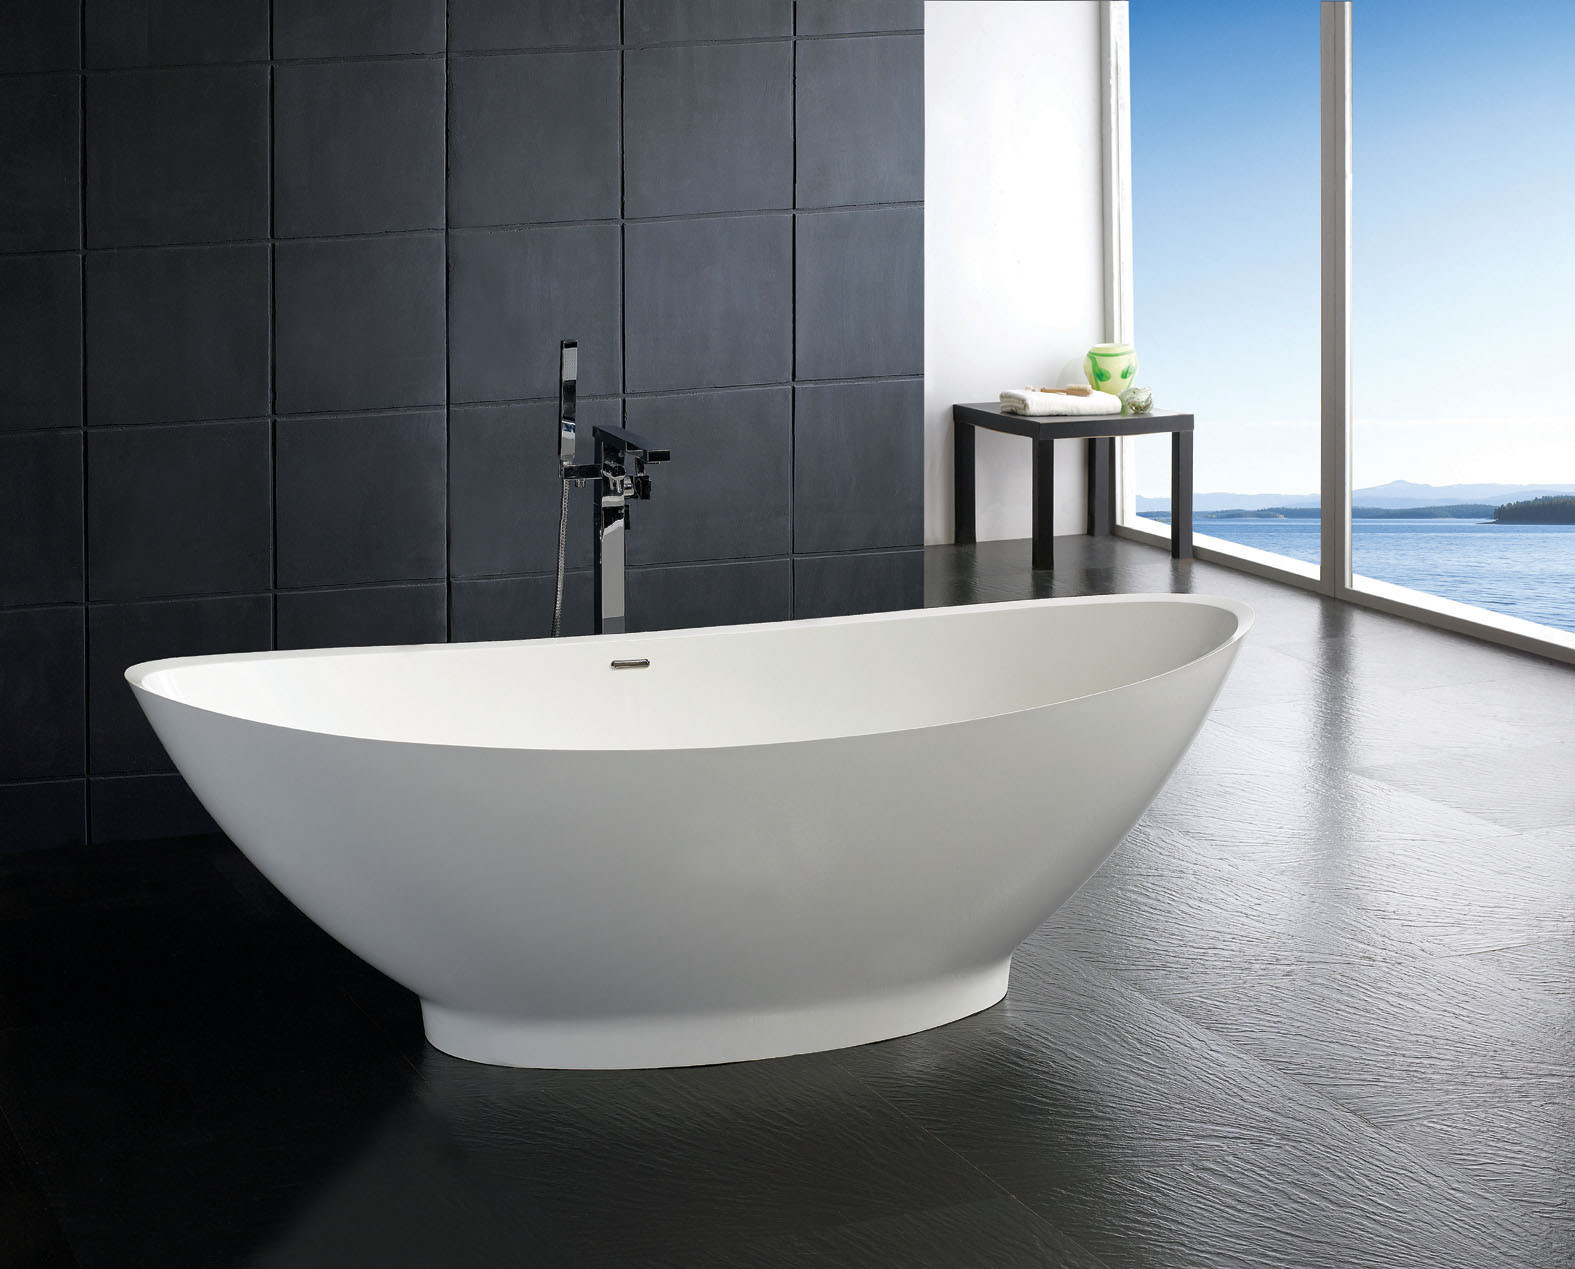 2 Person Soaking Tub The Best Inspiration For Interiors Design And Furniture